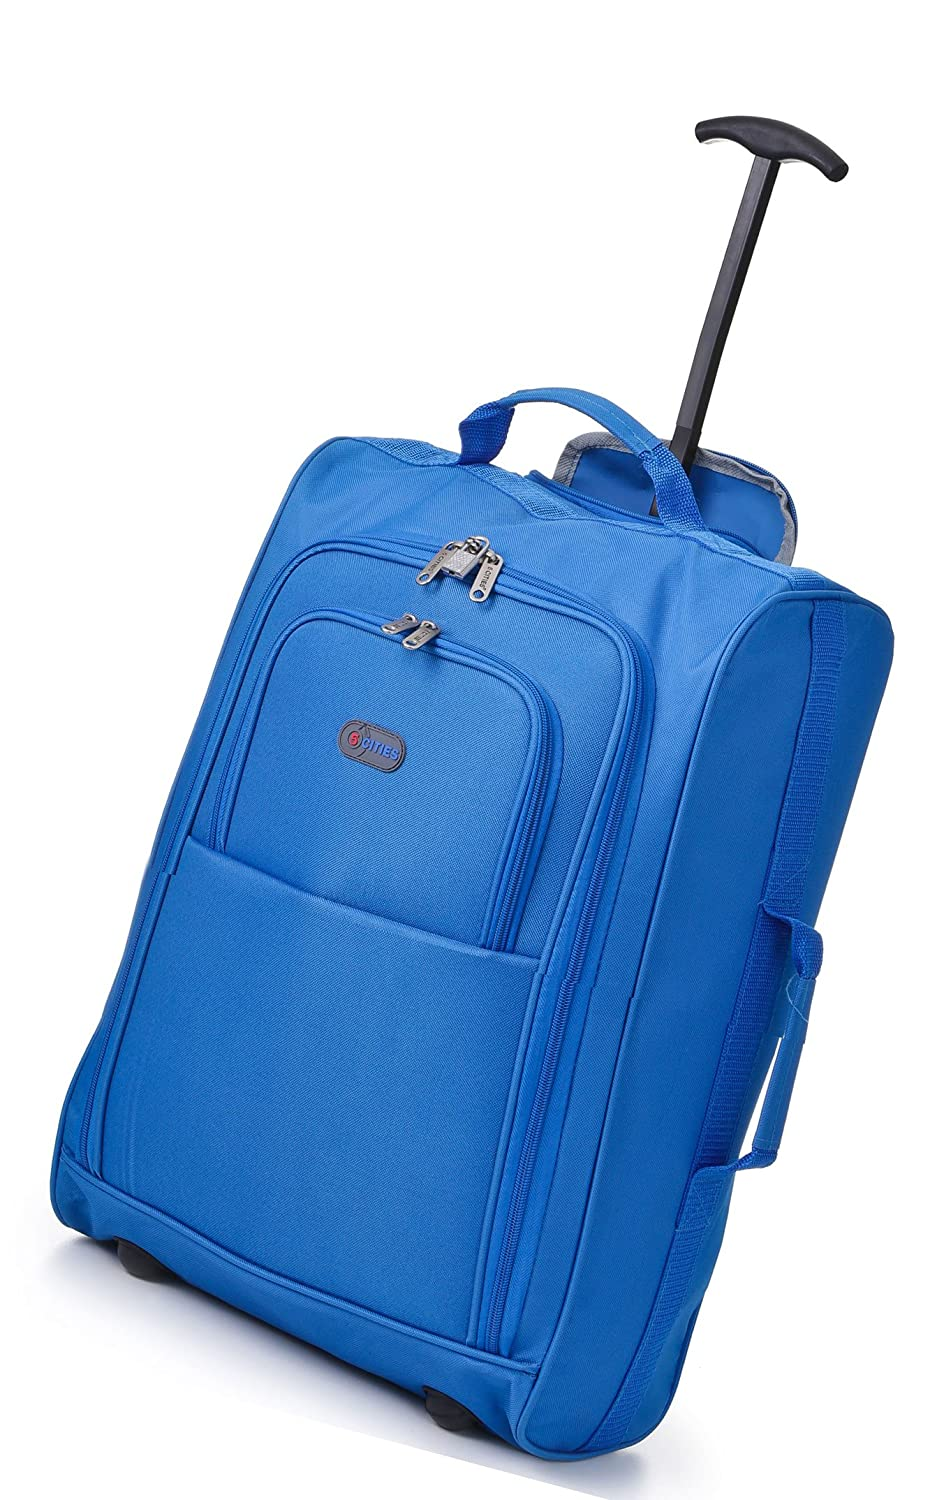 easyjet ryanair trolley cabin luggage carry on